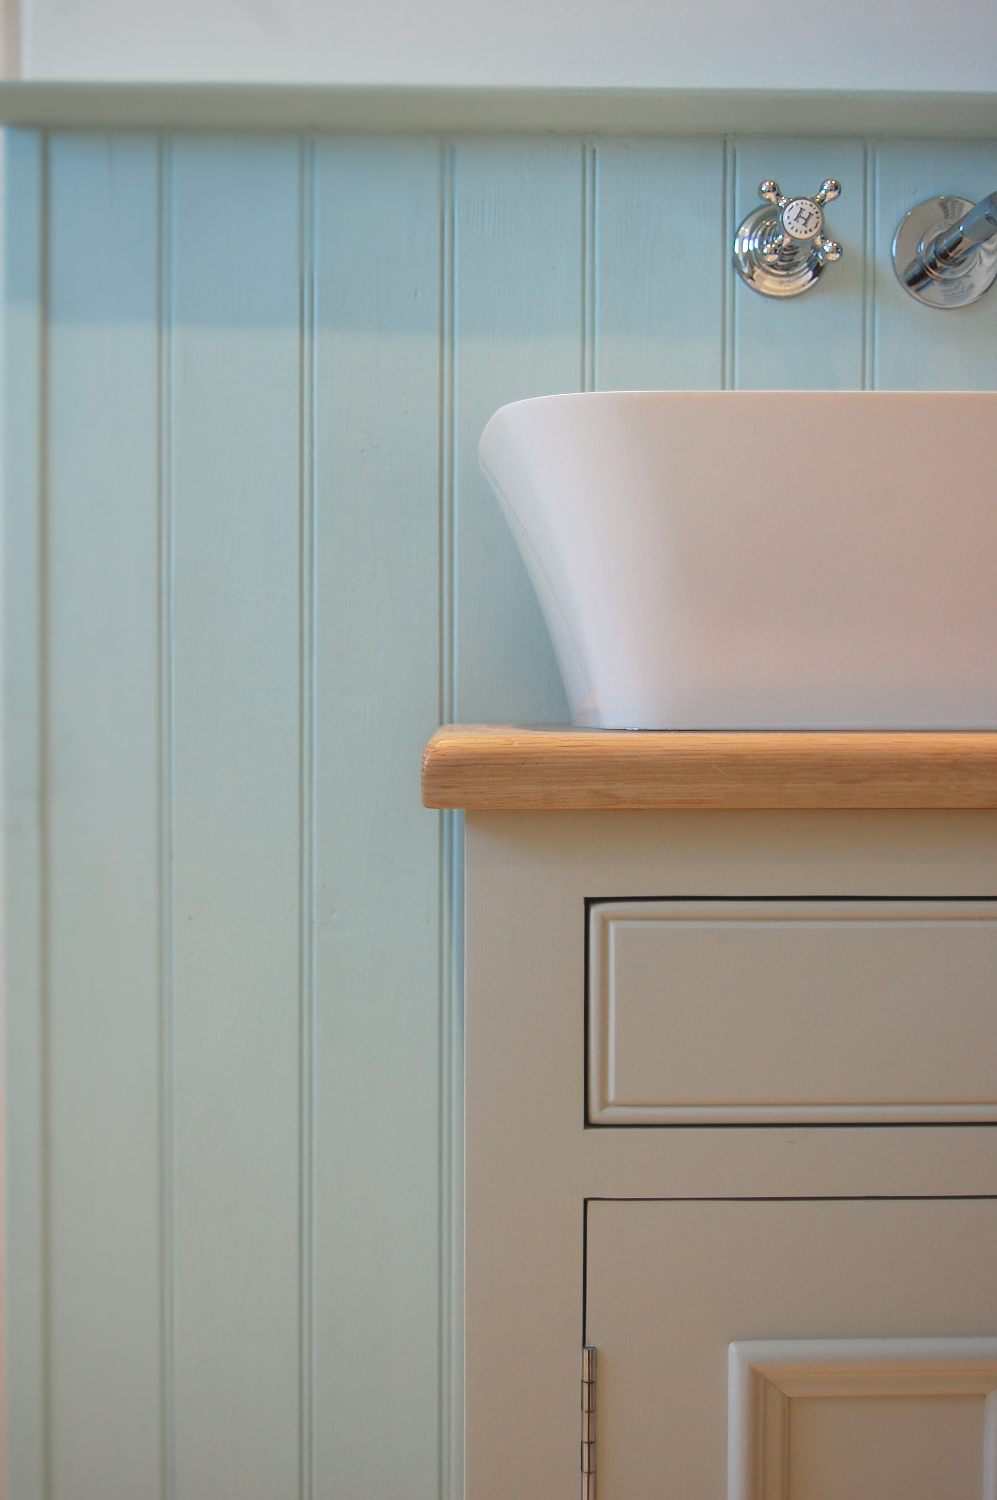 New period styling with wood panelling, stone composite basin from Clearwater and solid oak furniture by Neptune